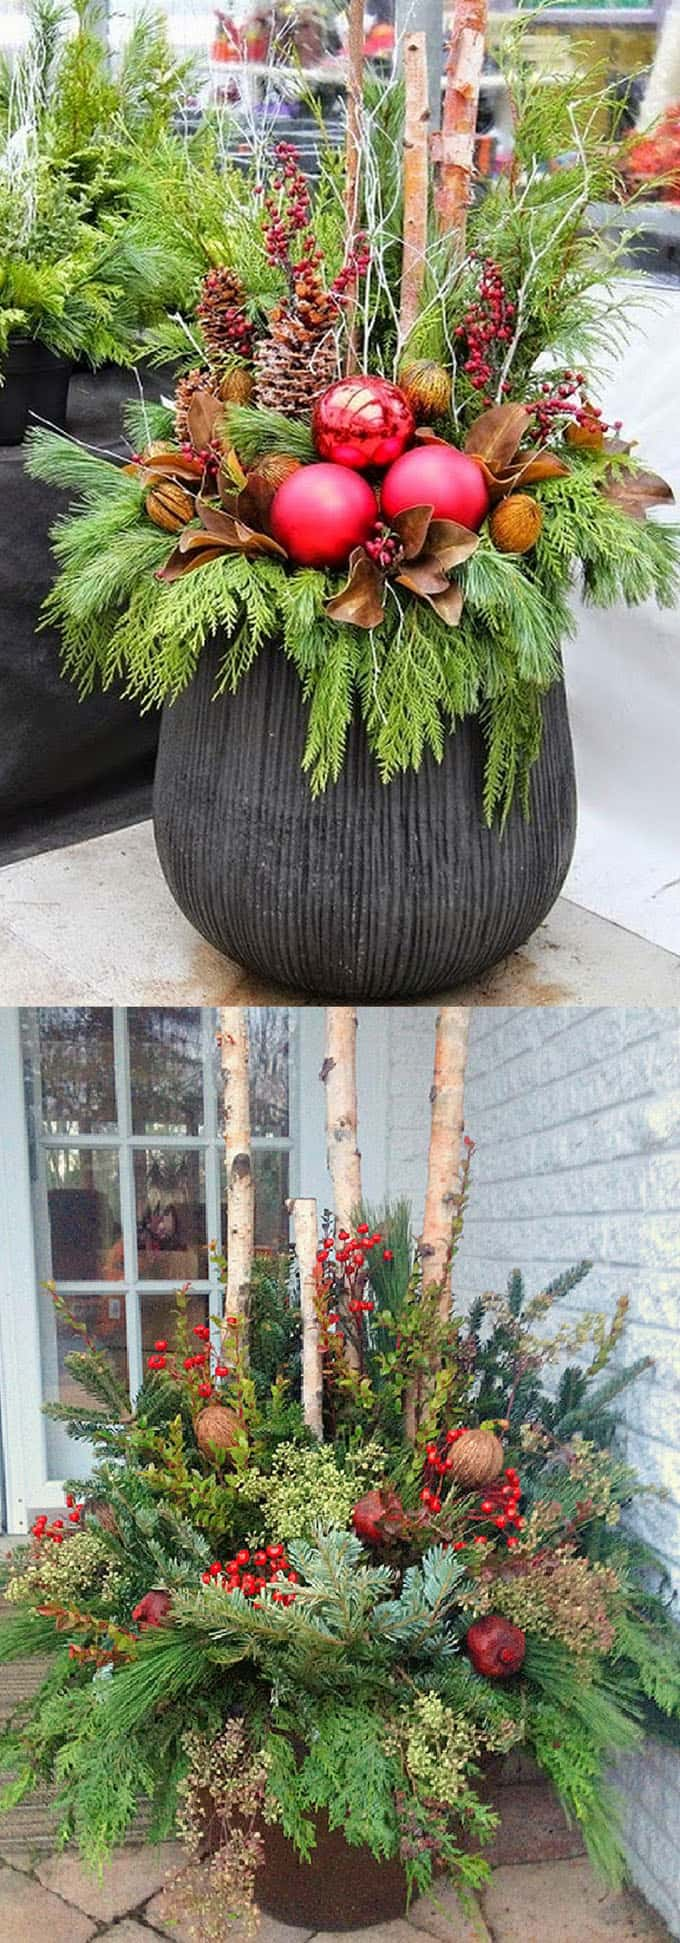 24 Colorful Winter Planters & Christmas Outdoor Decorations ...